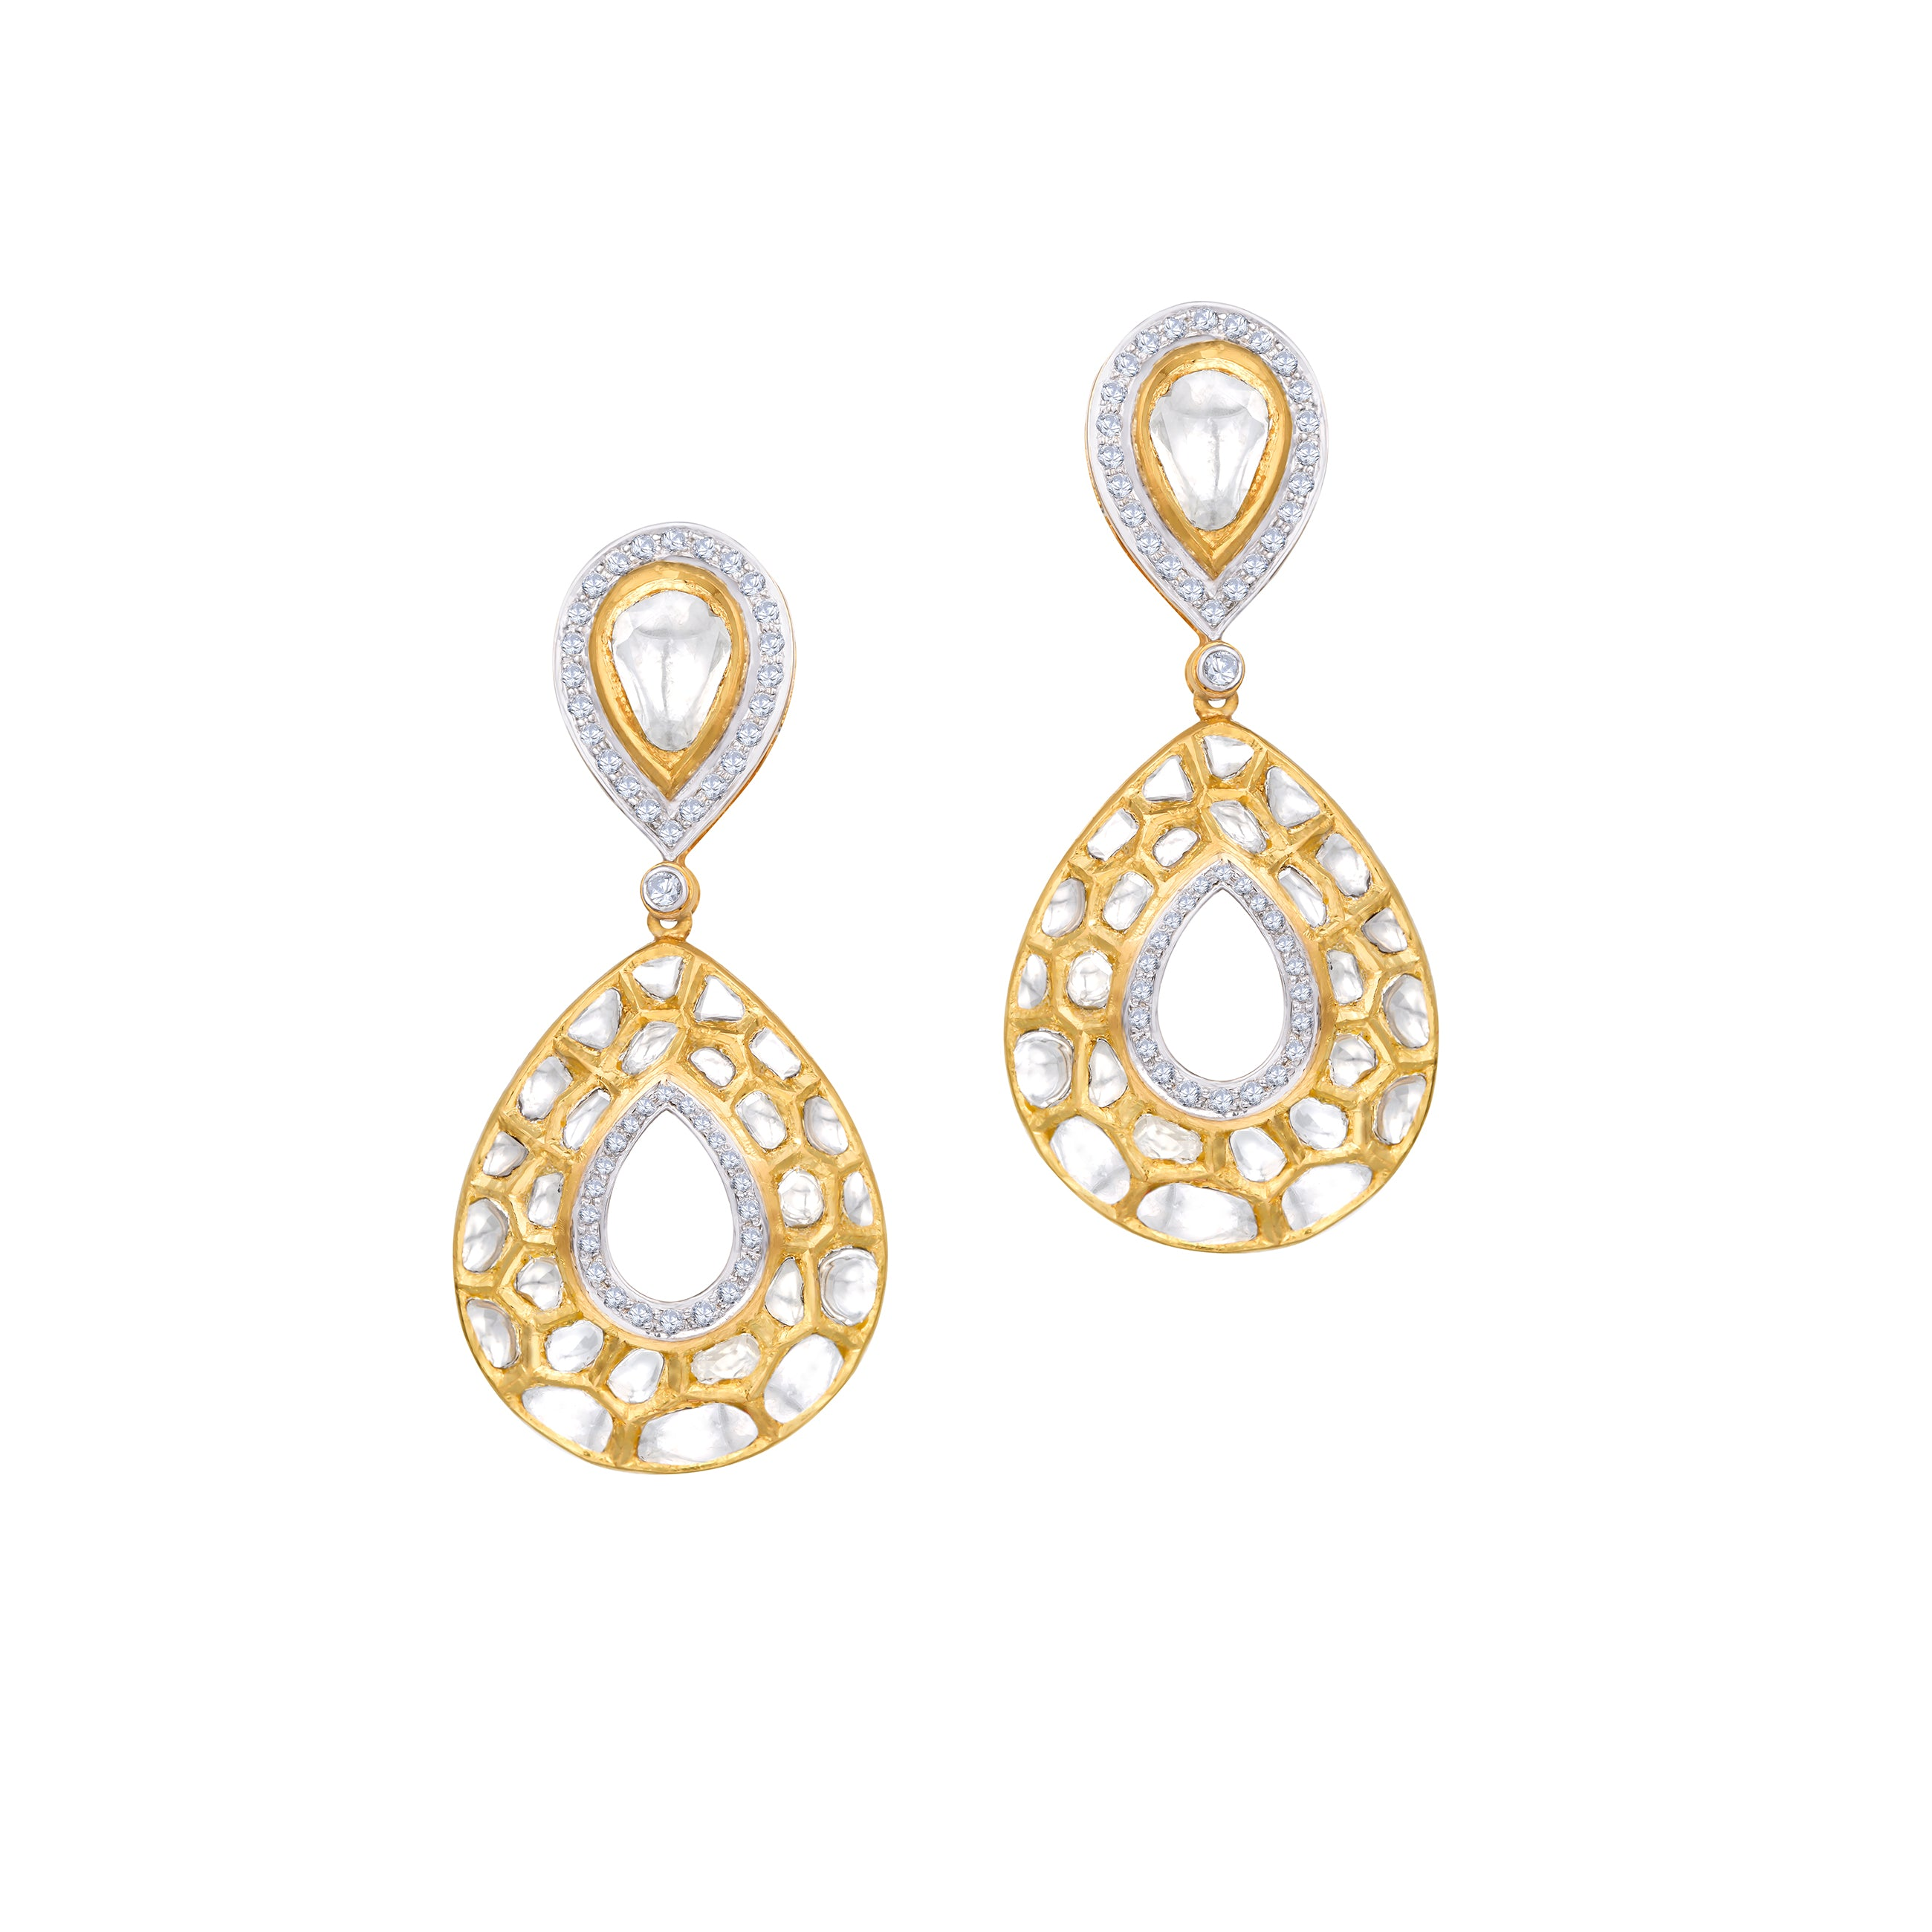 Uncut Diamond and Full Cut Diamond Earrings